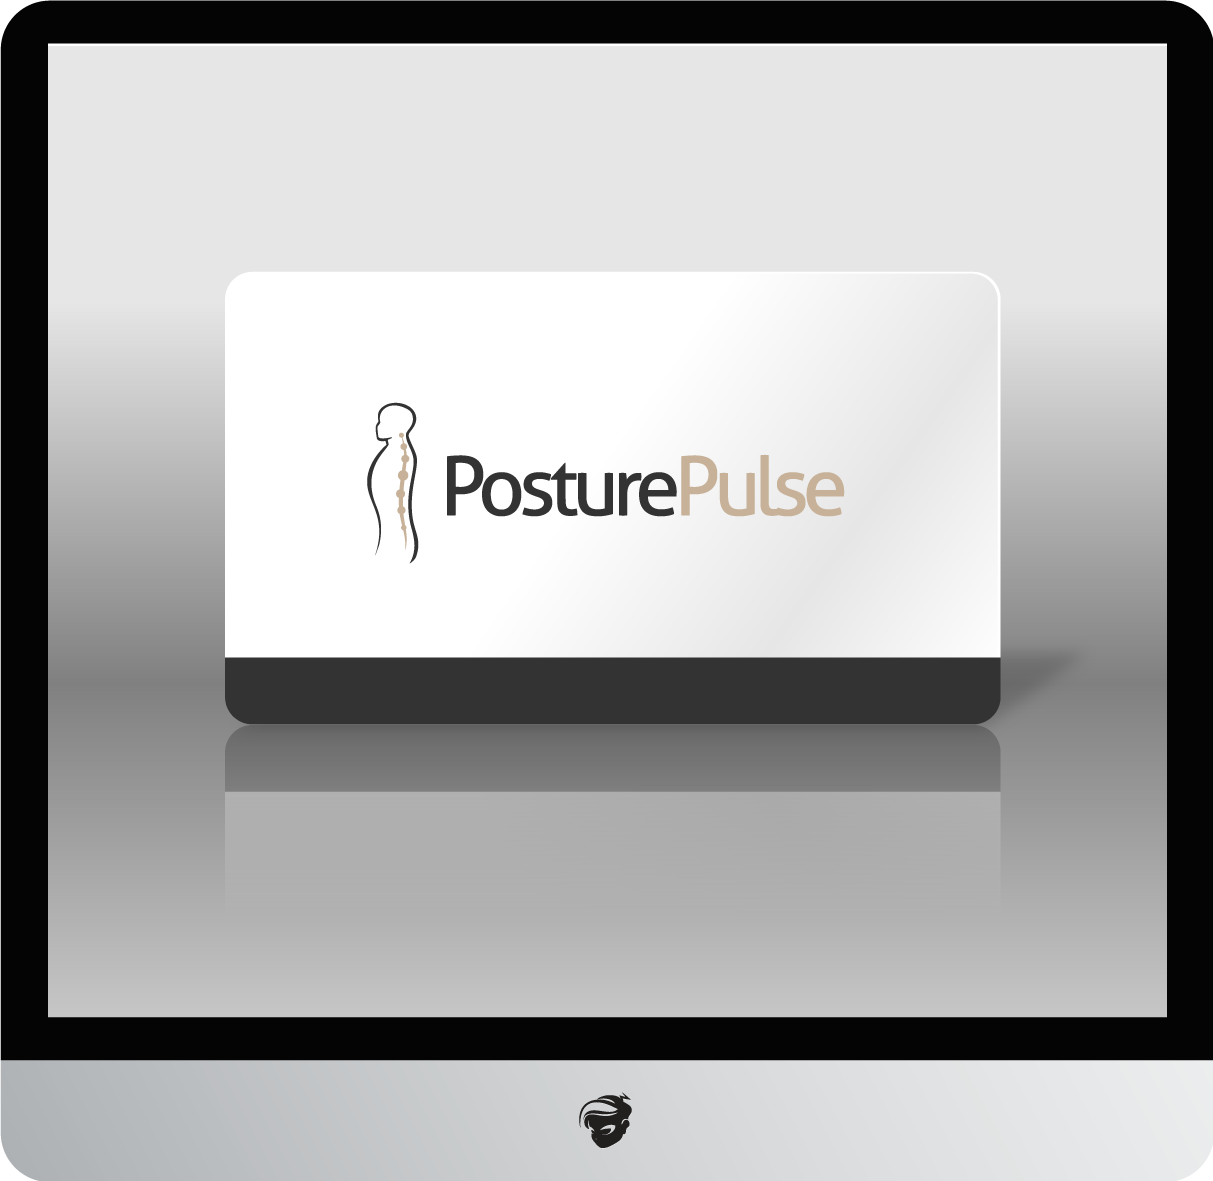 Logo Design by zesthar - Entry No. 103 in the Logo Design Contest Unique Logo Design Wanted for PosturePulse.